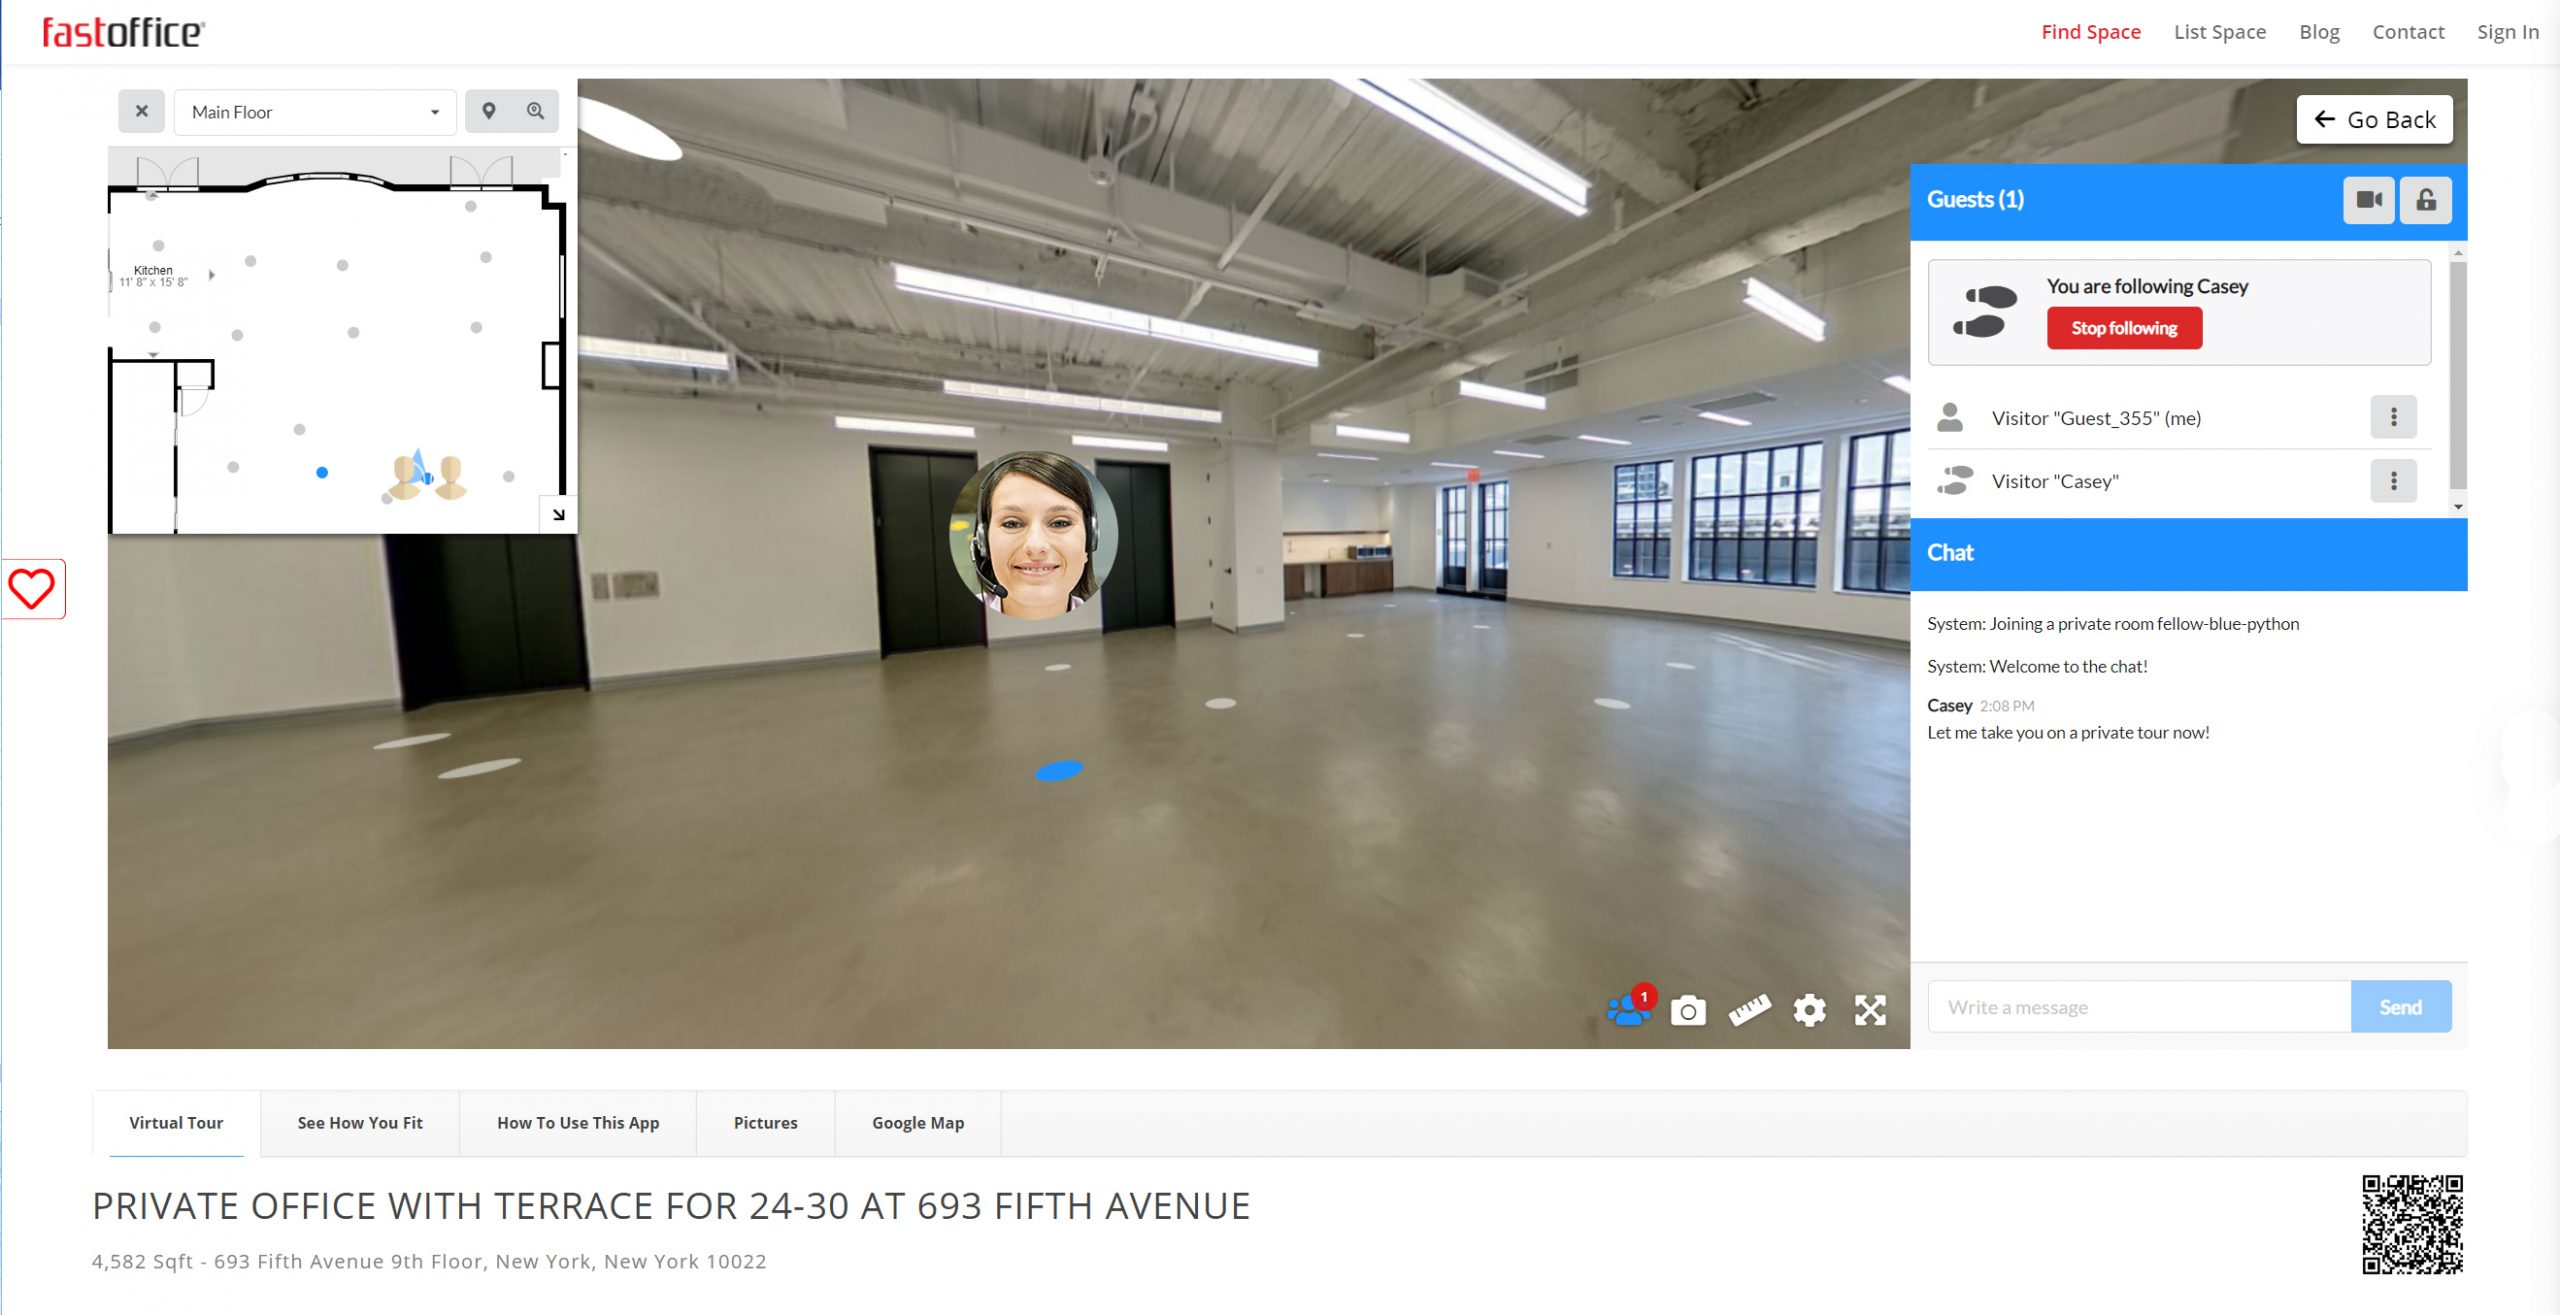 fastoffice how to rent your space fast - virtually tour